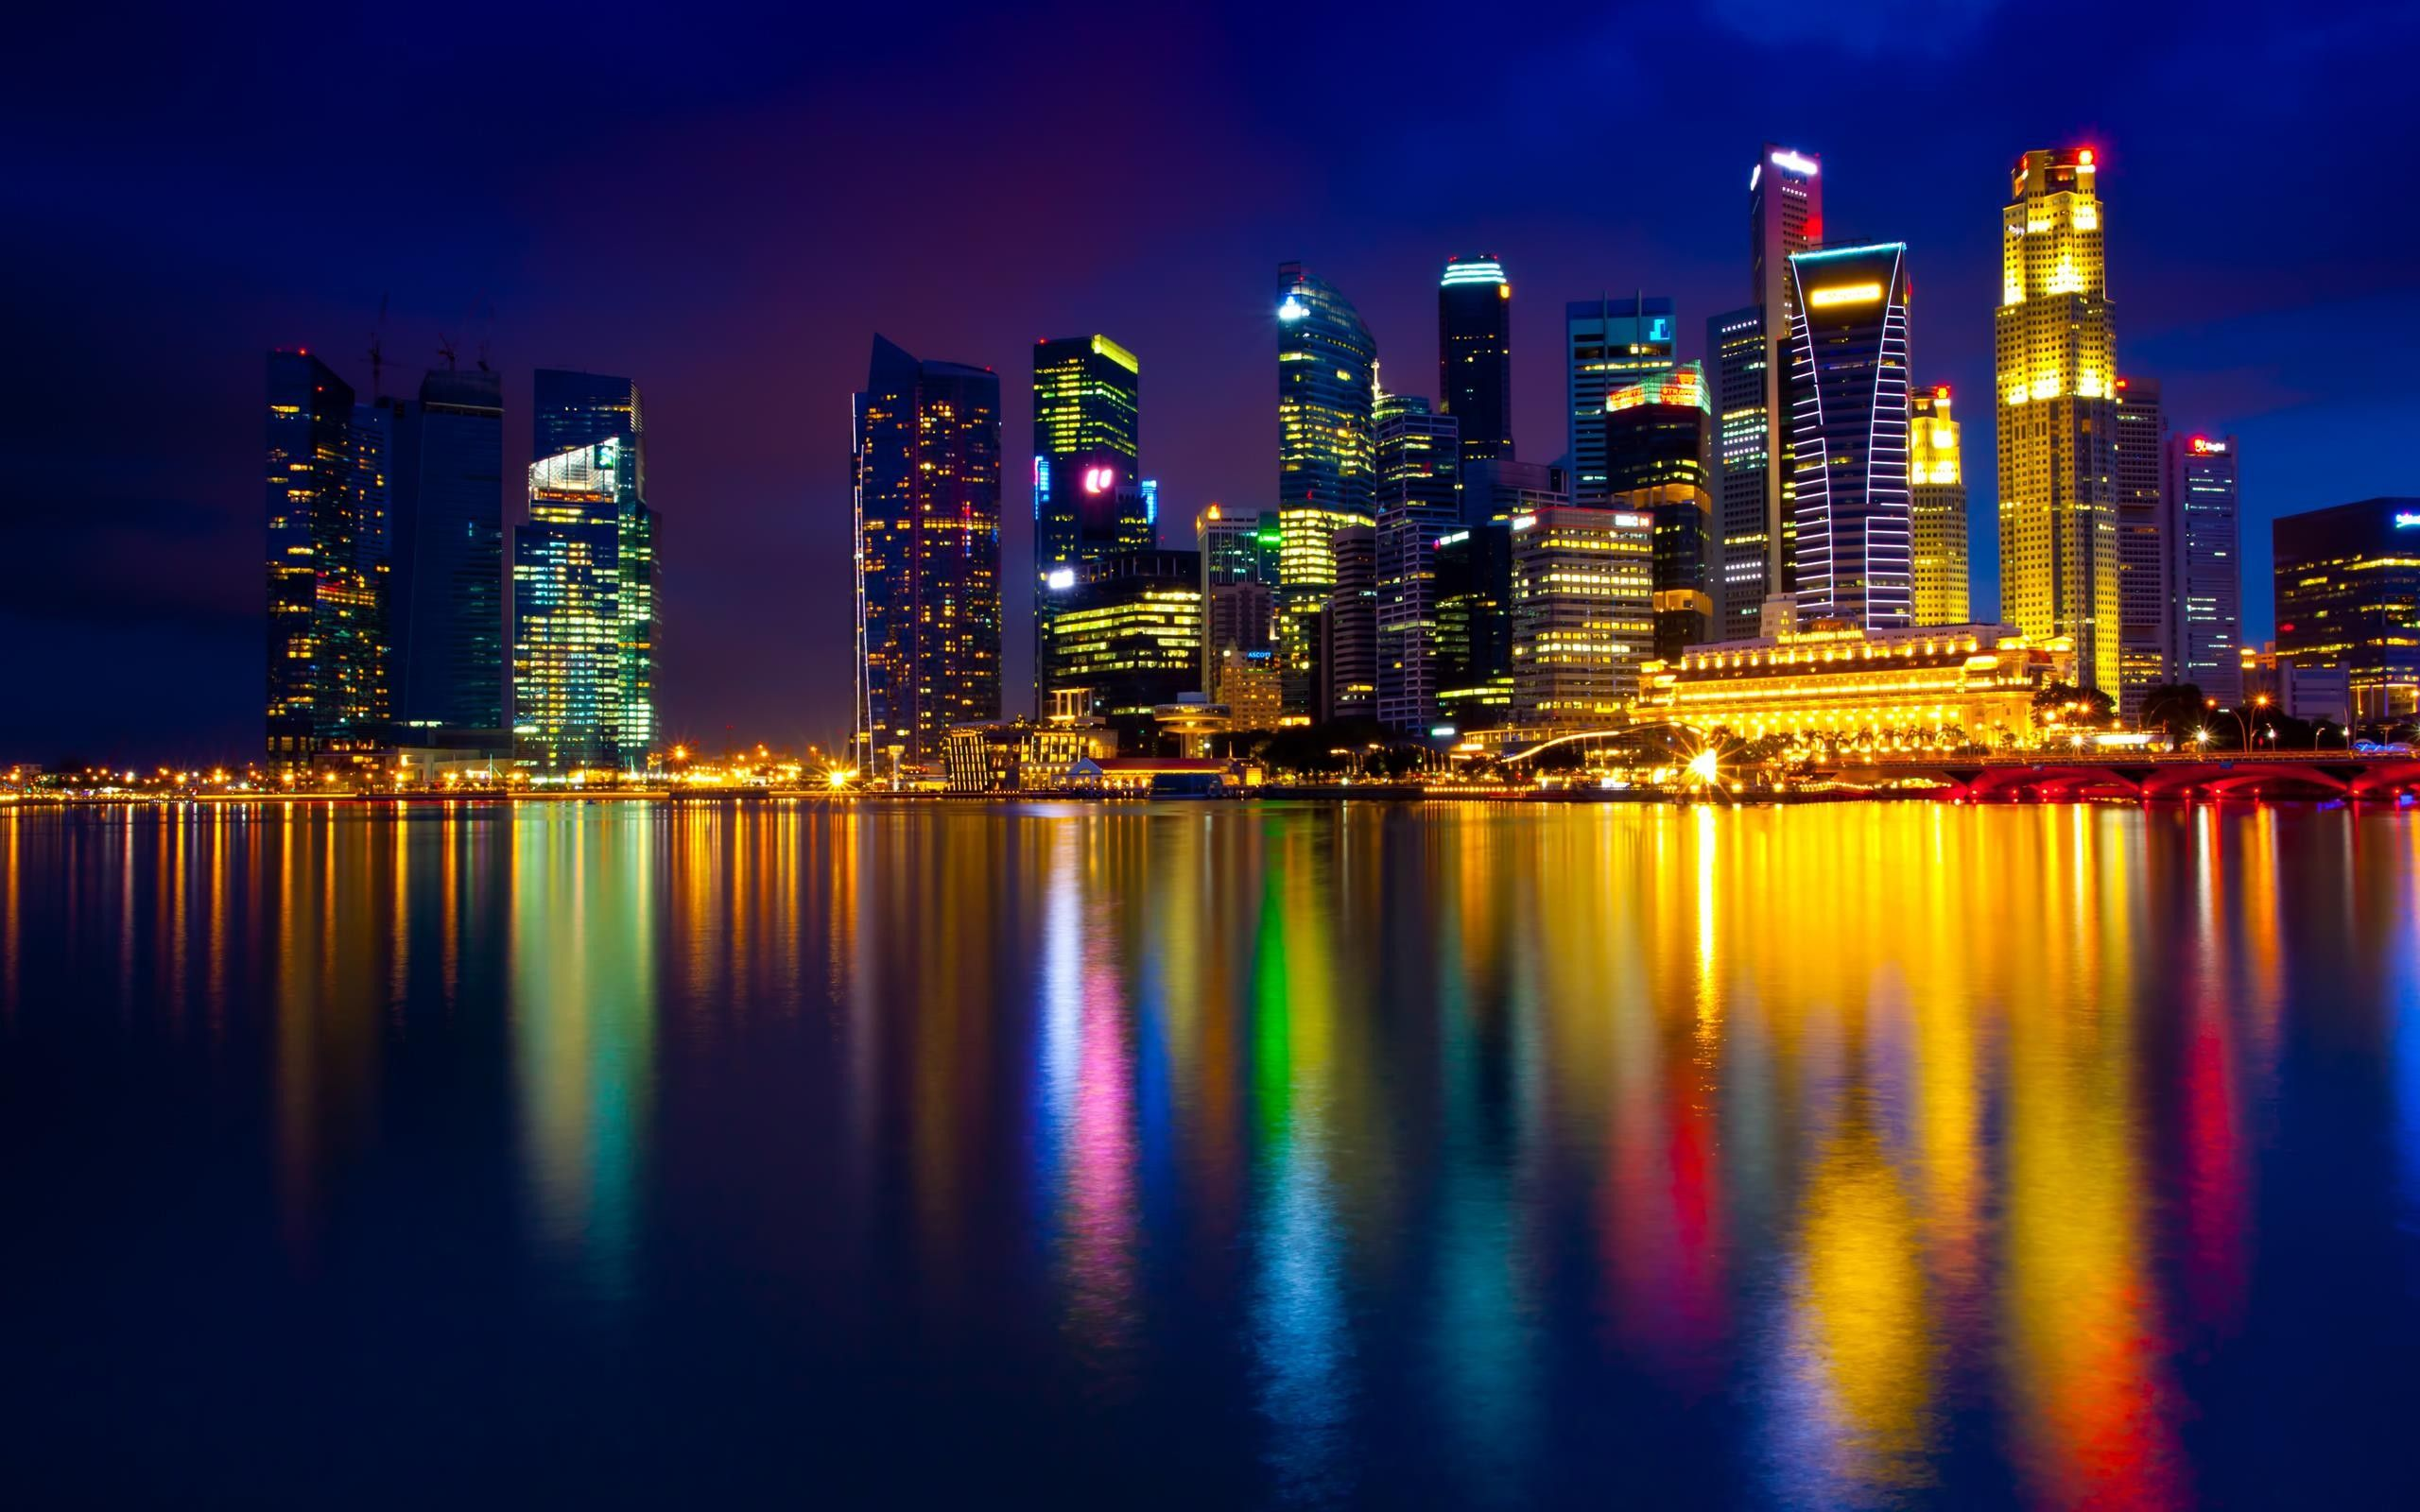 Singapore Night Colorful With Images Singapore City